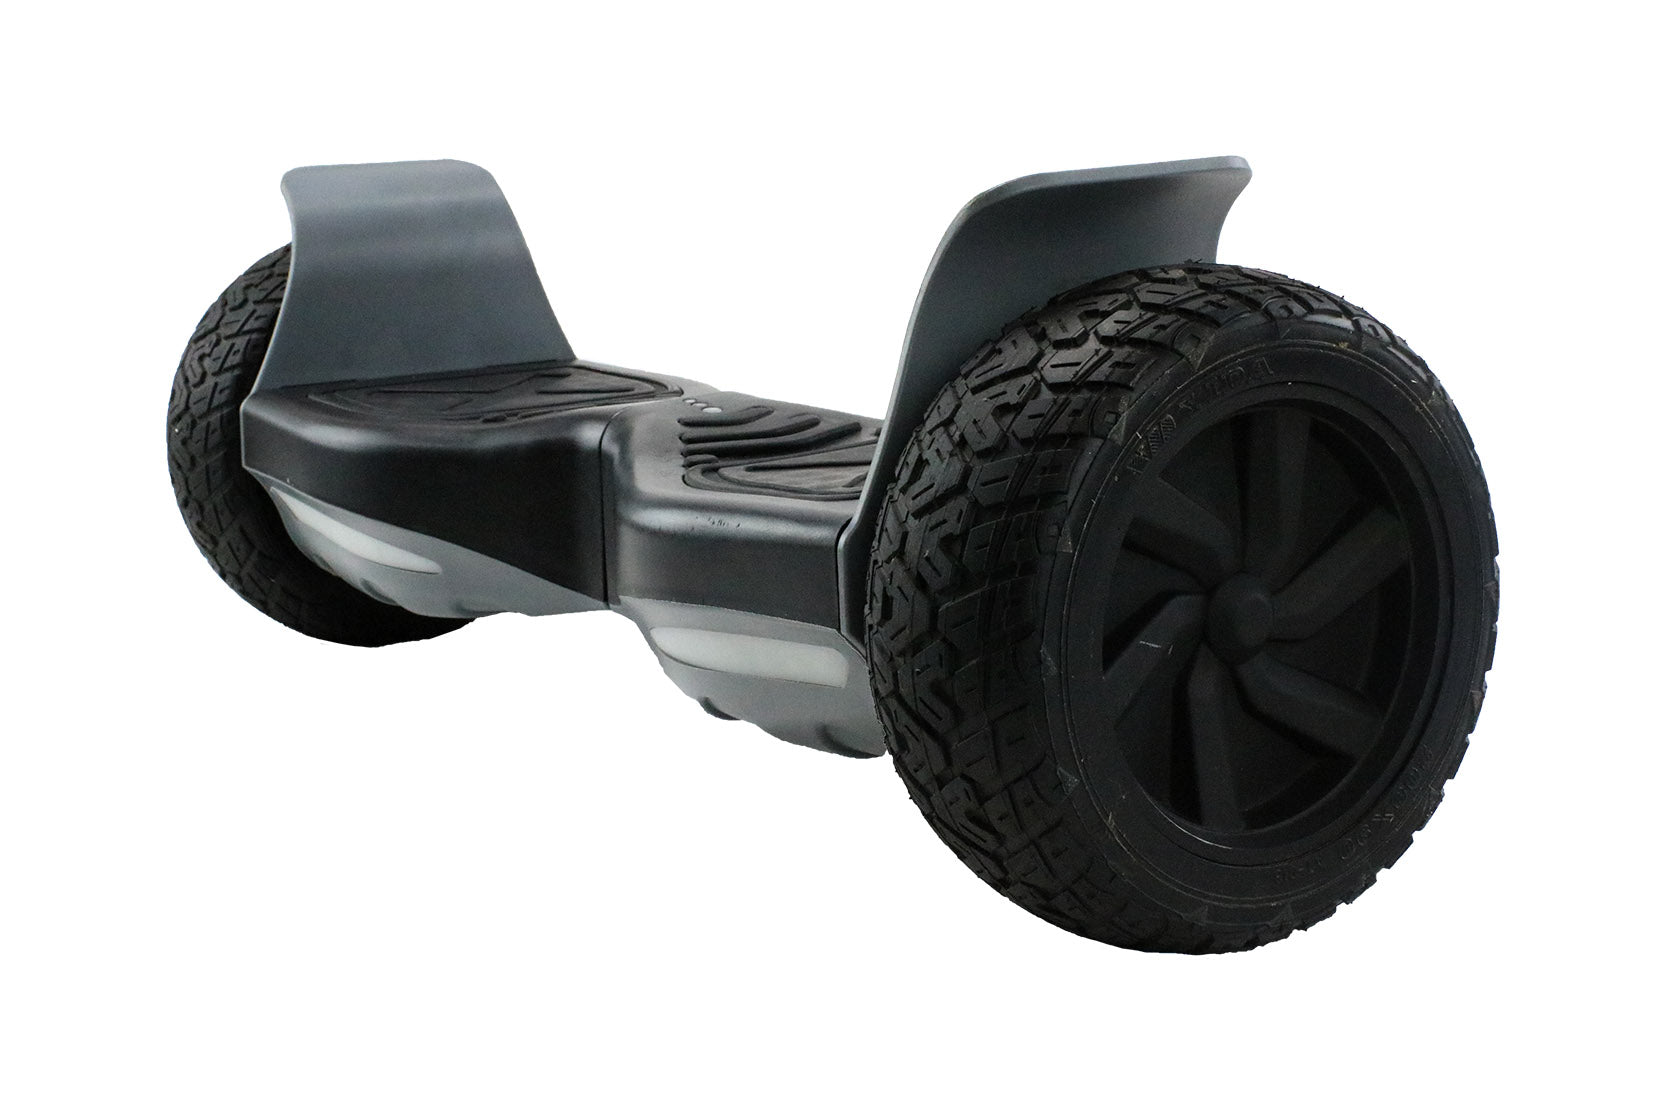 REFURBISHED ALL TERRAIN 8.5″ HOVERBOARD BLACK/GREY + BLUETOOTH DEAL